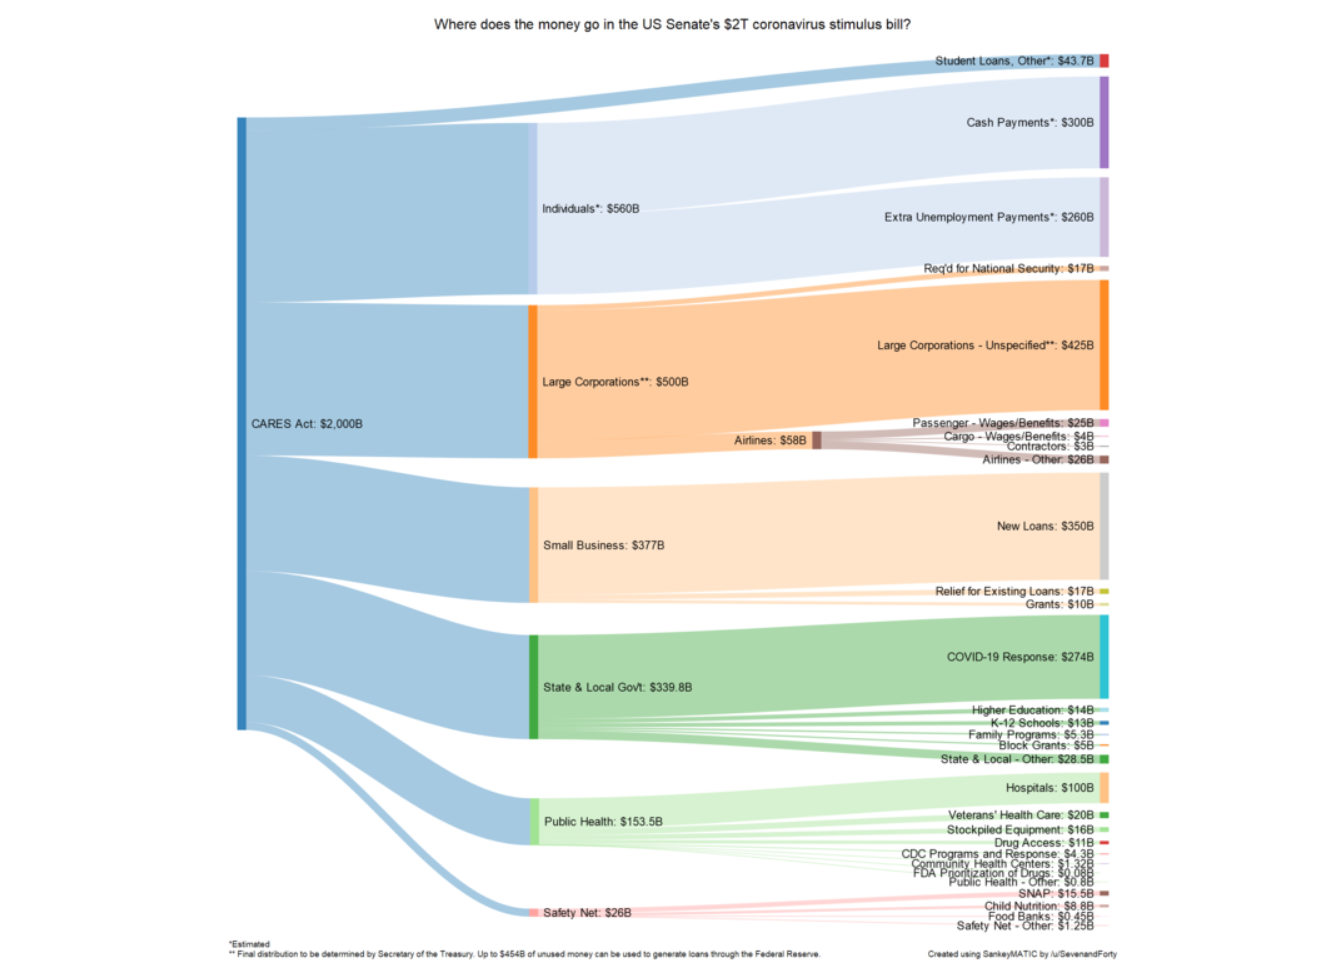 Sankey diagram depicting dispersal of funds from the CARES Act.